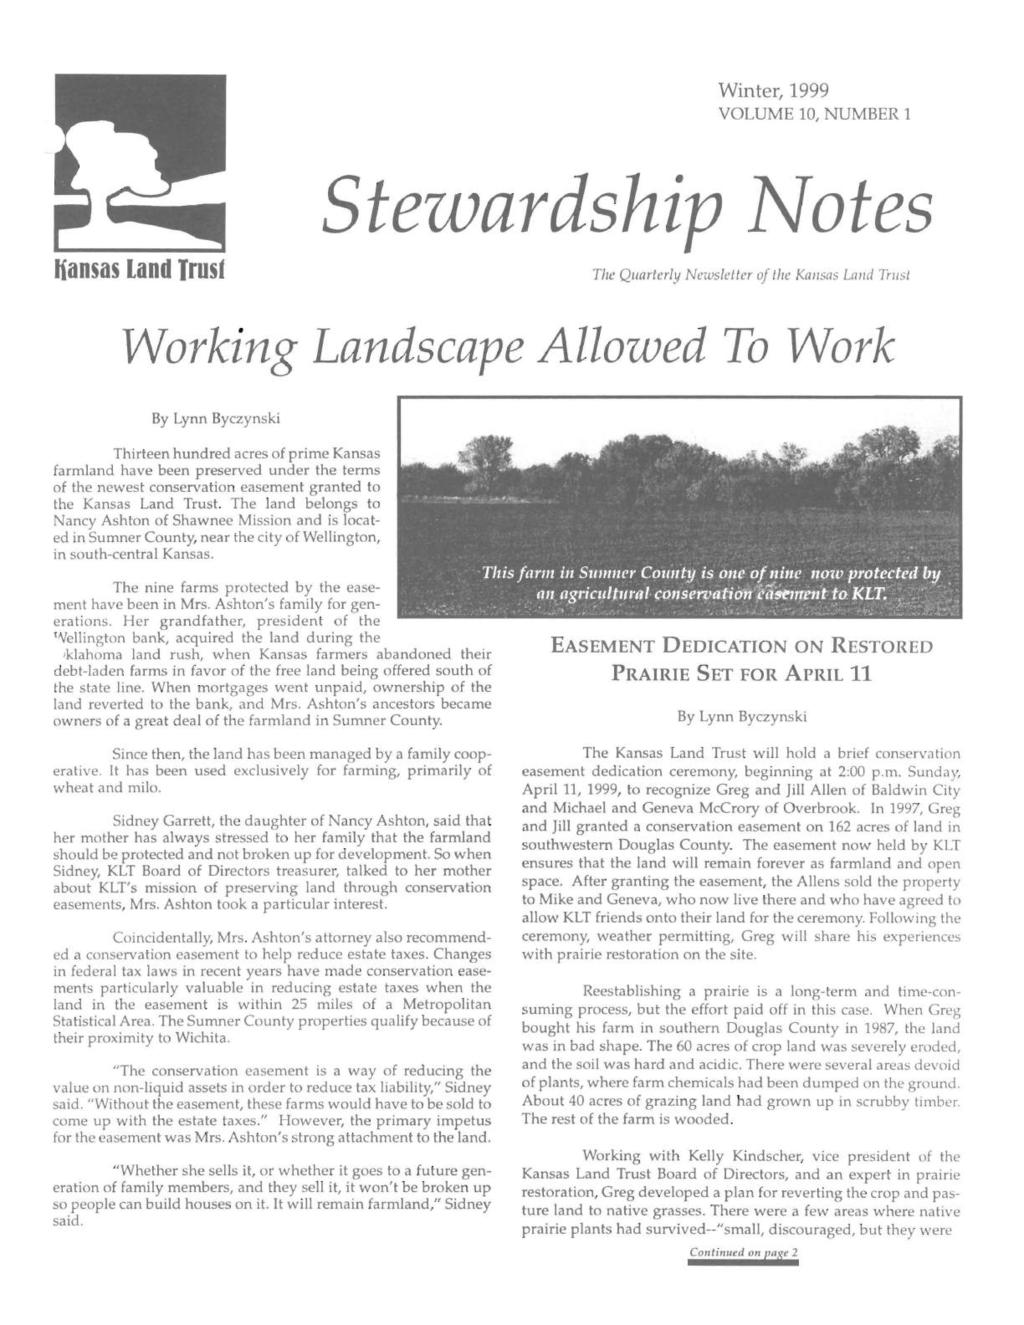 Winter, 1999 VOLUME 10, NUMBER 1 Stezvardship ~otes liansas Land Trust The Quarterly Newsletter of the Ka1lsas La1ld Trust Working Landscape Allowed To Work By Lynn Byczynski Thirteen hundred acres